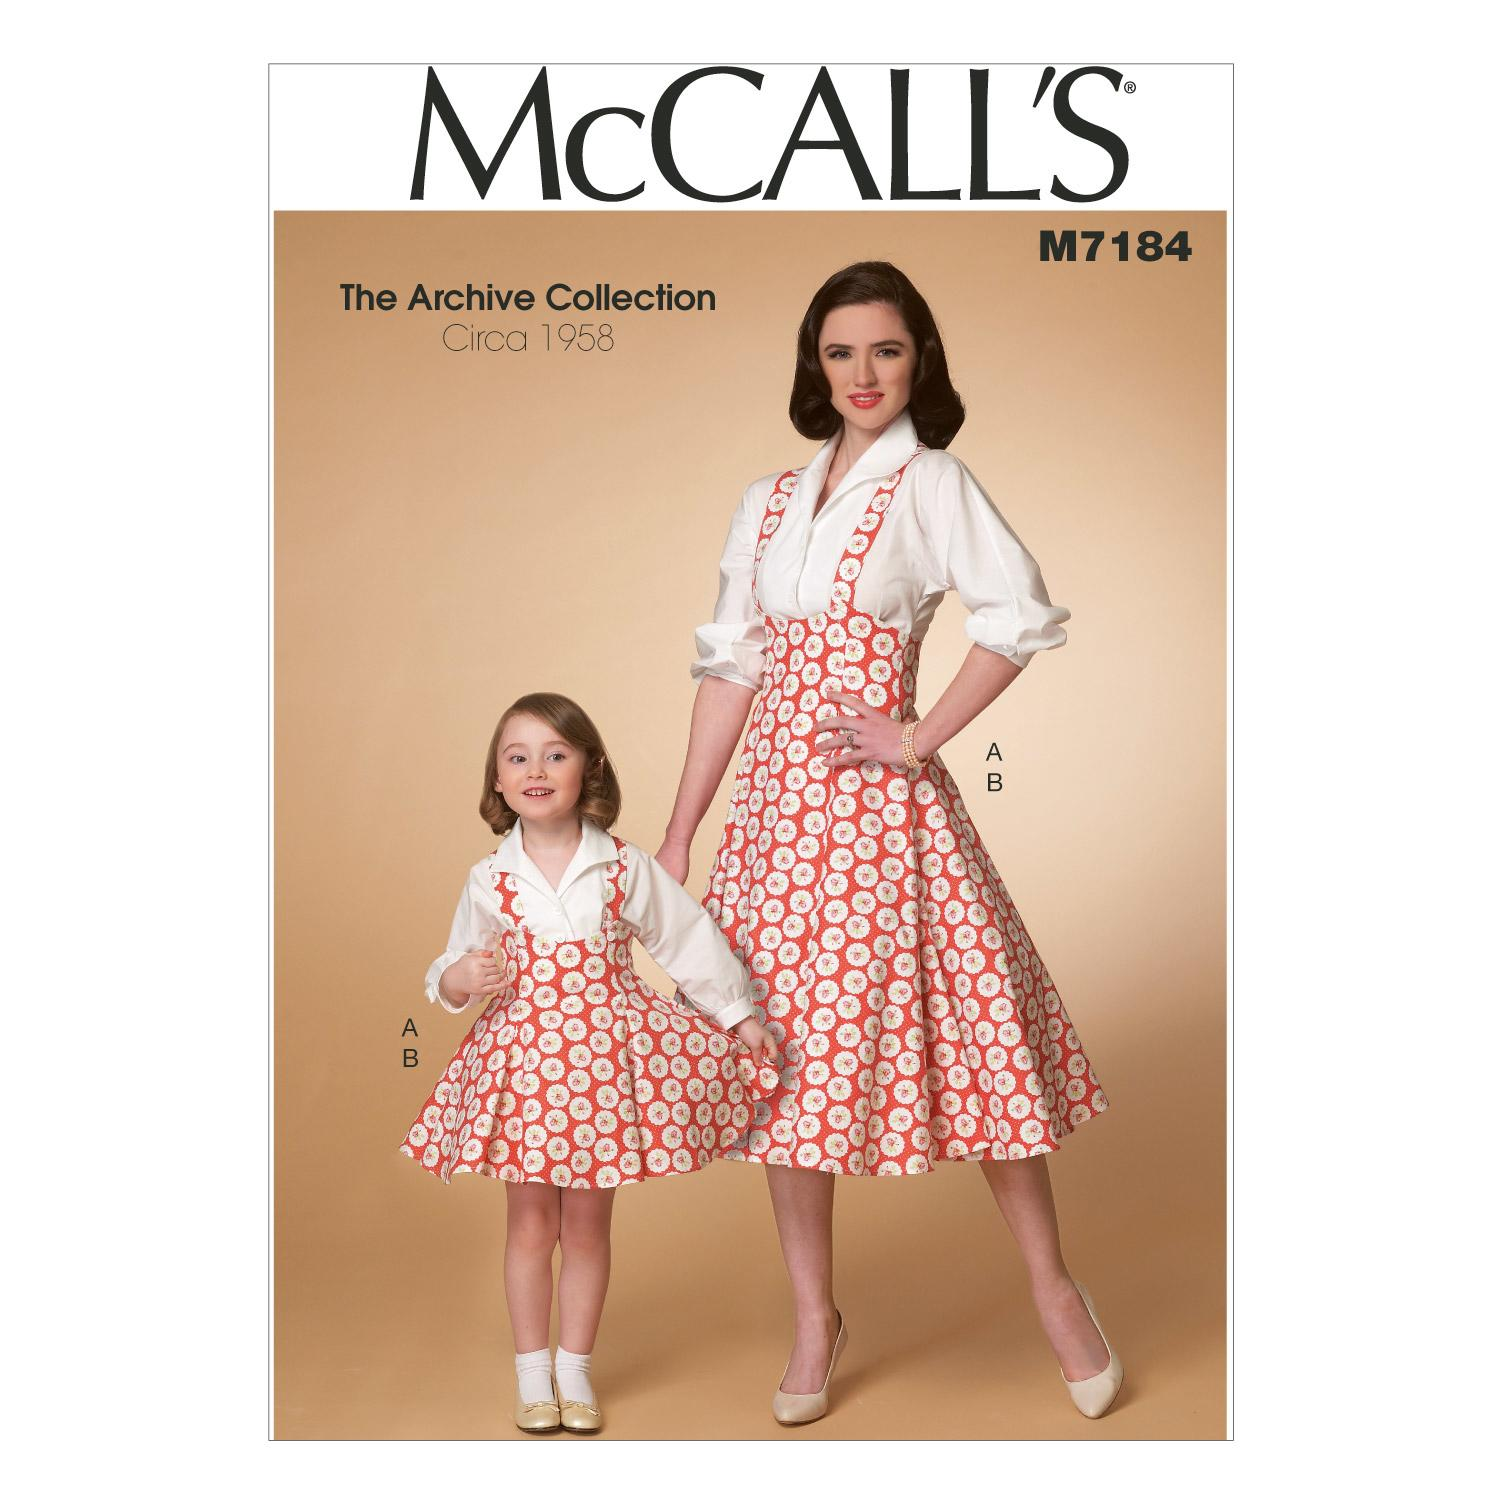 McCalls M7184 Children, Coordinates, Dresses, Girls/Boys, Halloween, The Archive Collection